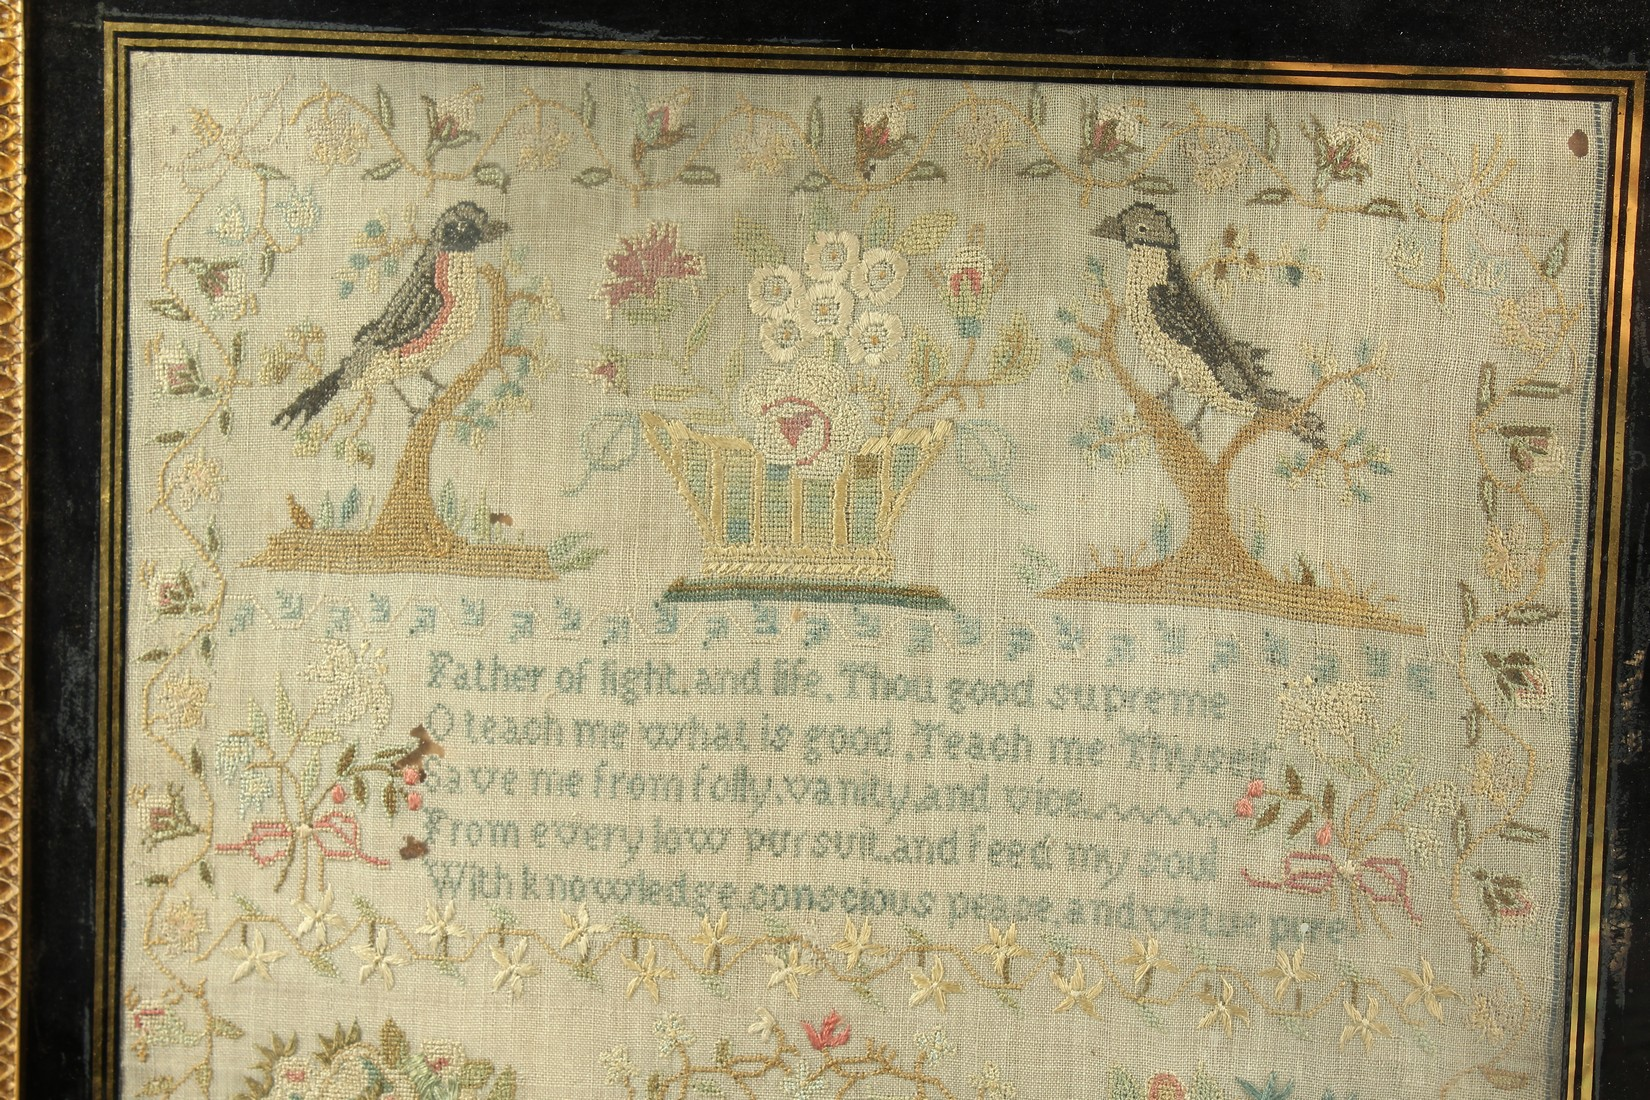 A GEORGE III FRAMED AND GLAZED SAMPLER by Roberta Allerton, 1787, with a poem, birds, flowers etc. - Image 2 of 7